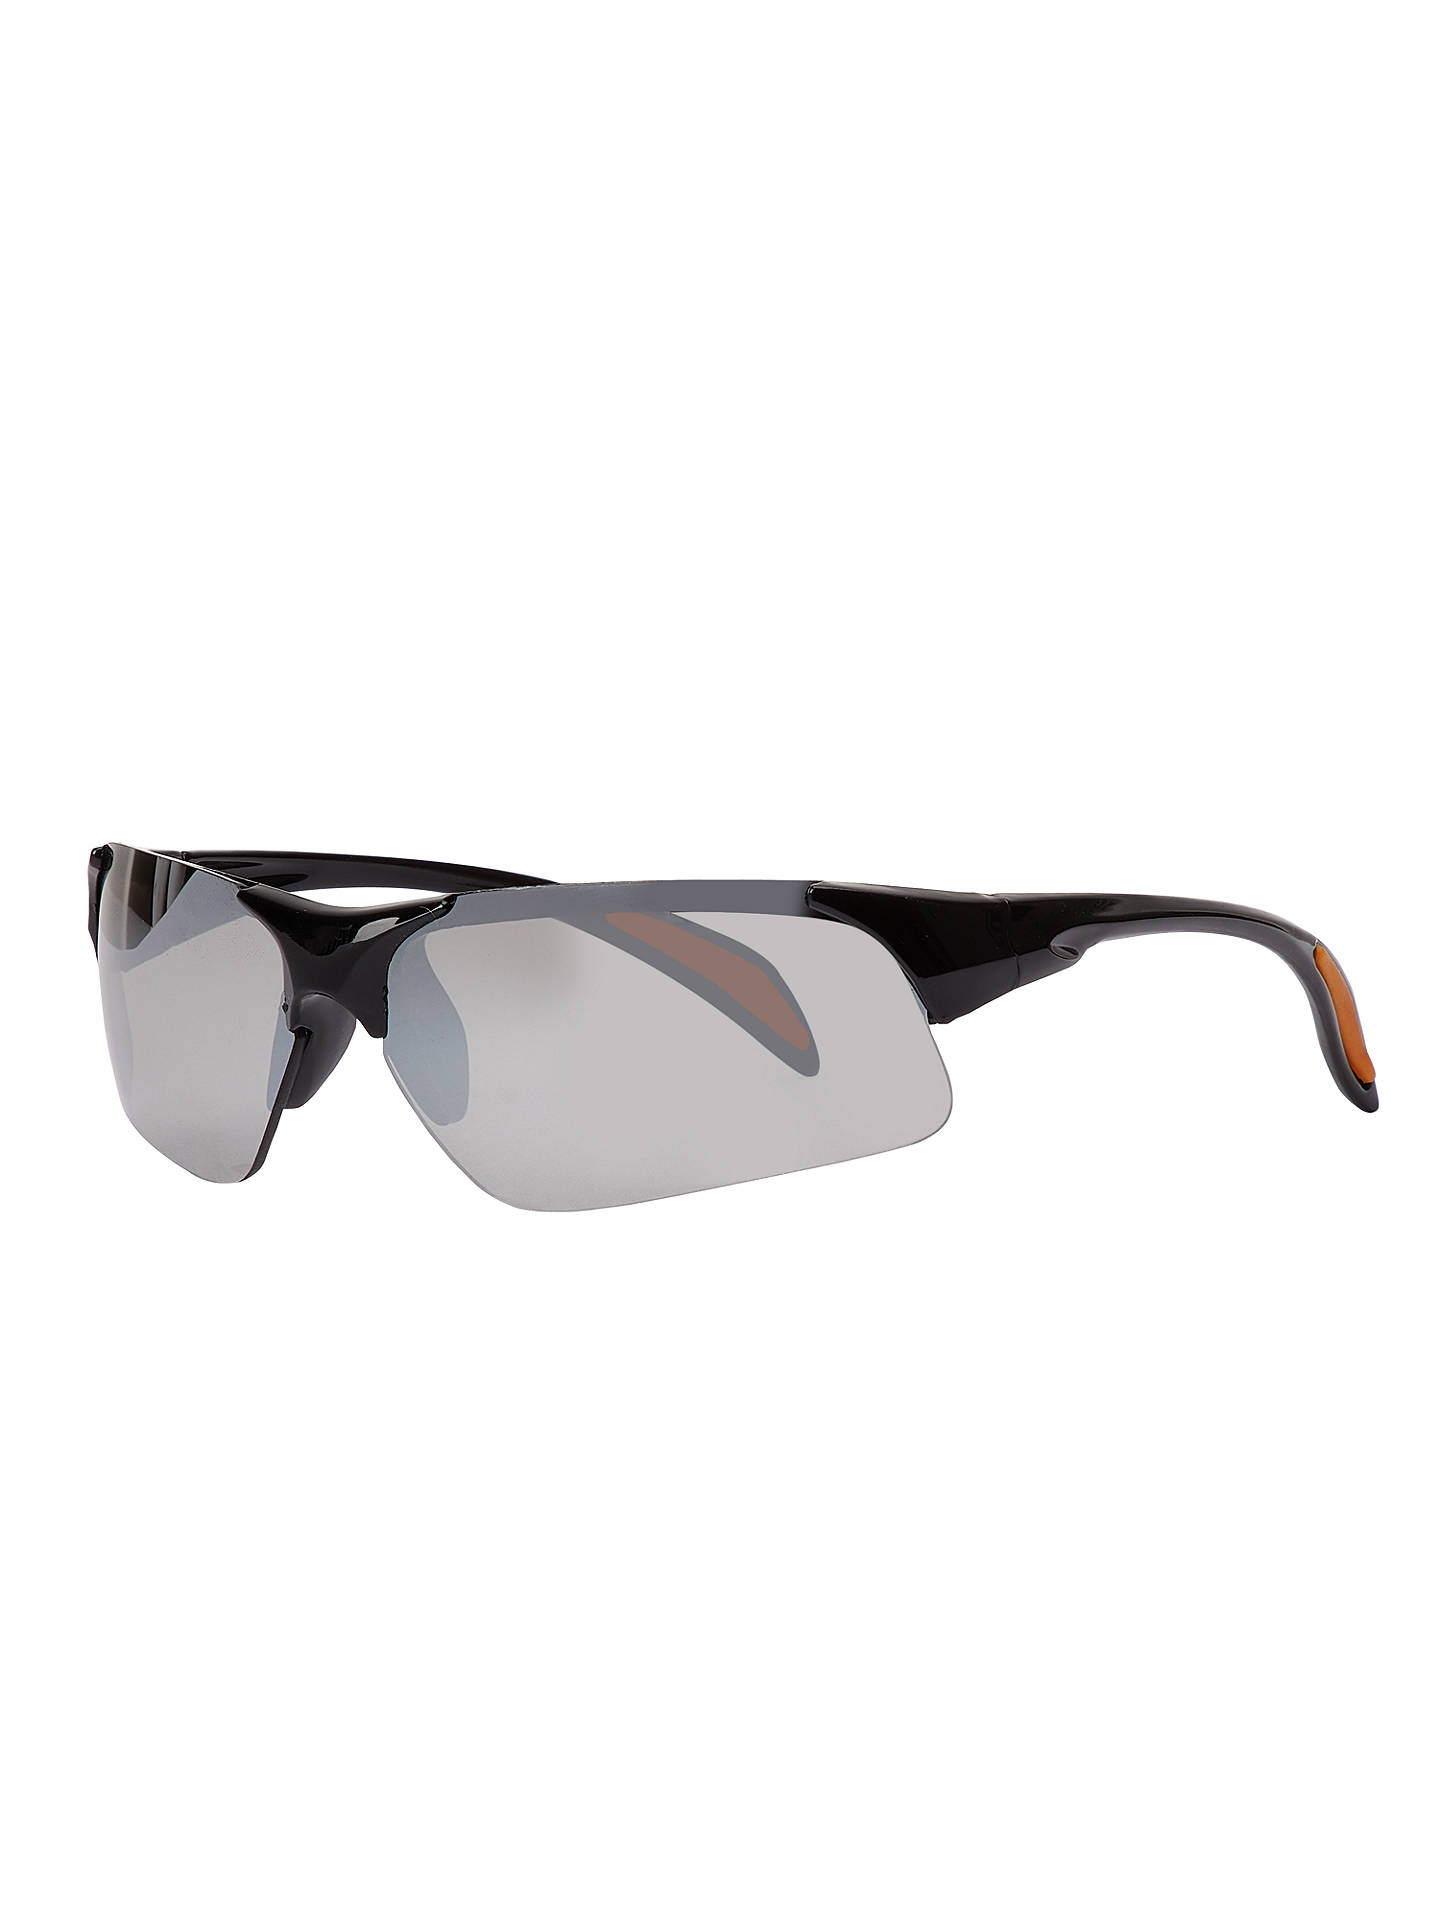 BuyJohn Lewis & Partners Children's Sports Wrap Mirror Sunglasses, Black Online at johnlewis.com